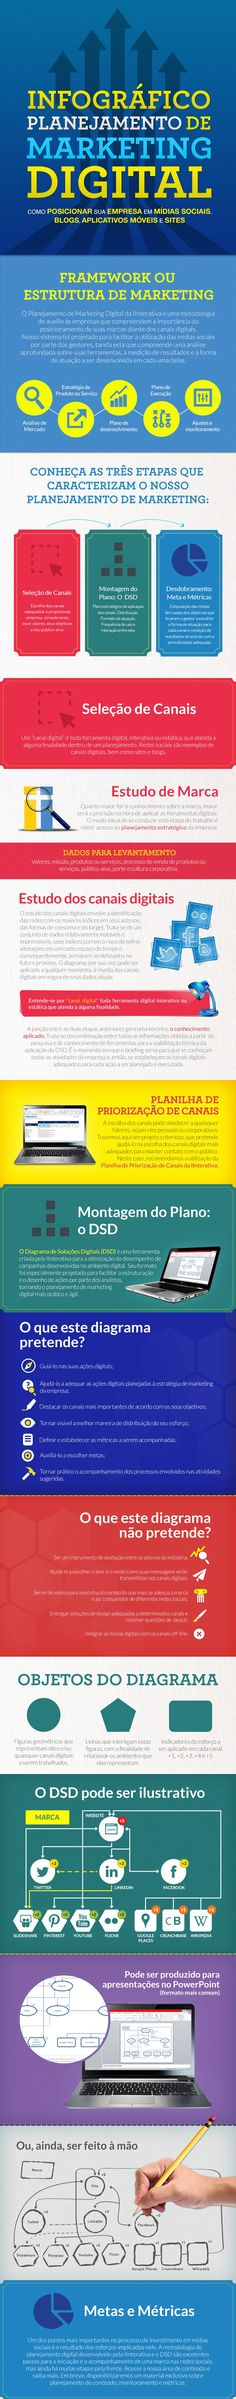 Infográfico: planejamento de marketing digital.